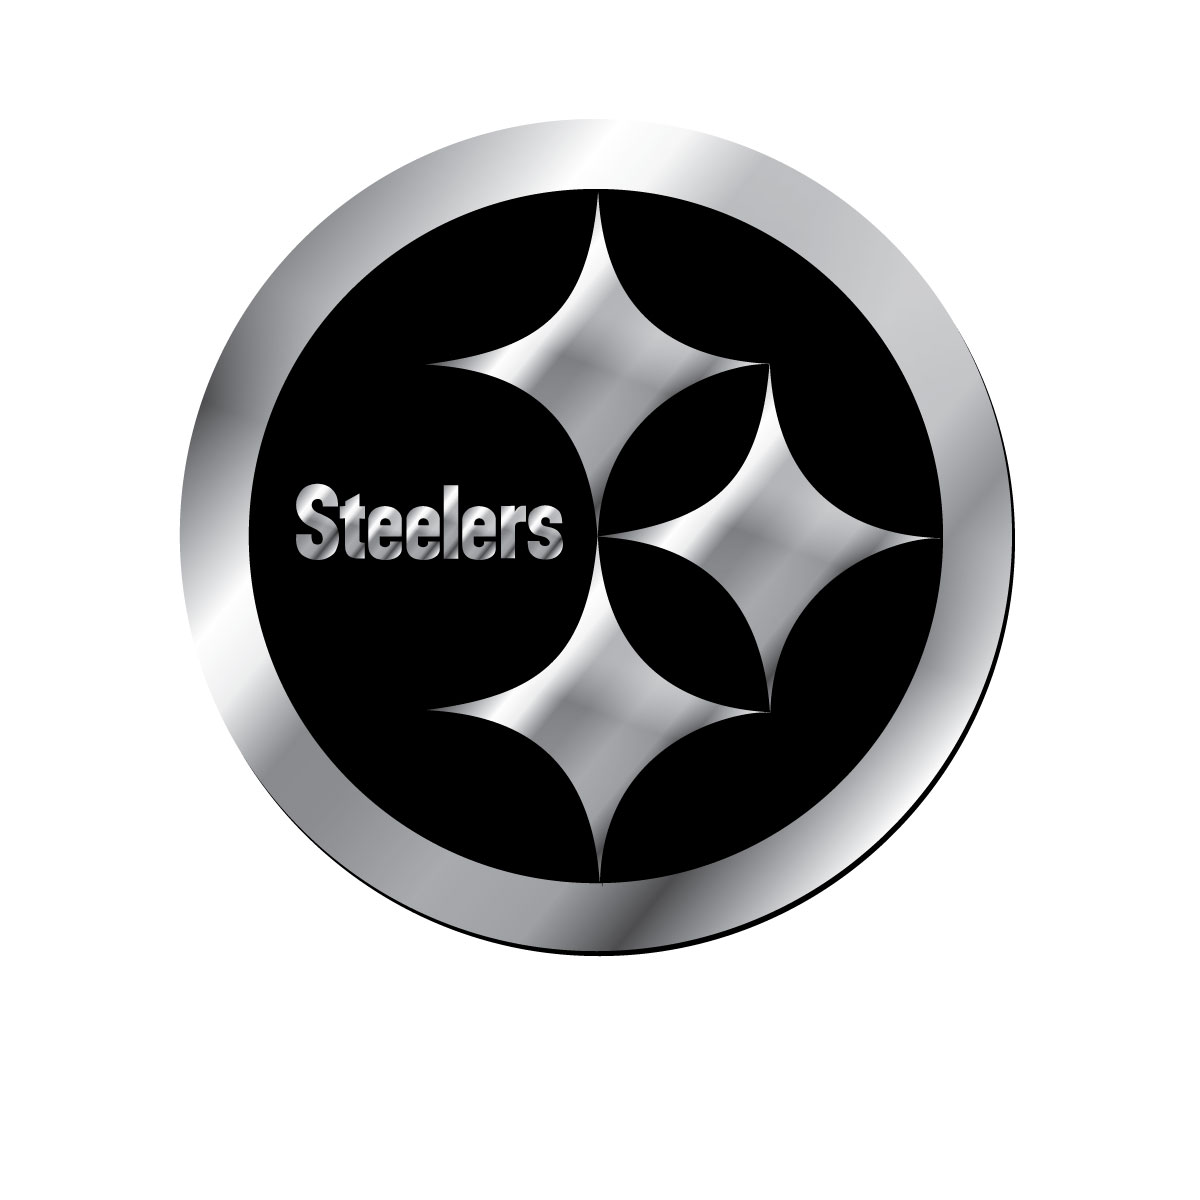 Wallpaper Steelers steel logo 1200x1200